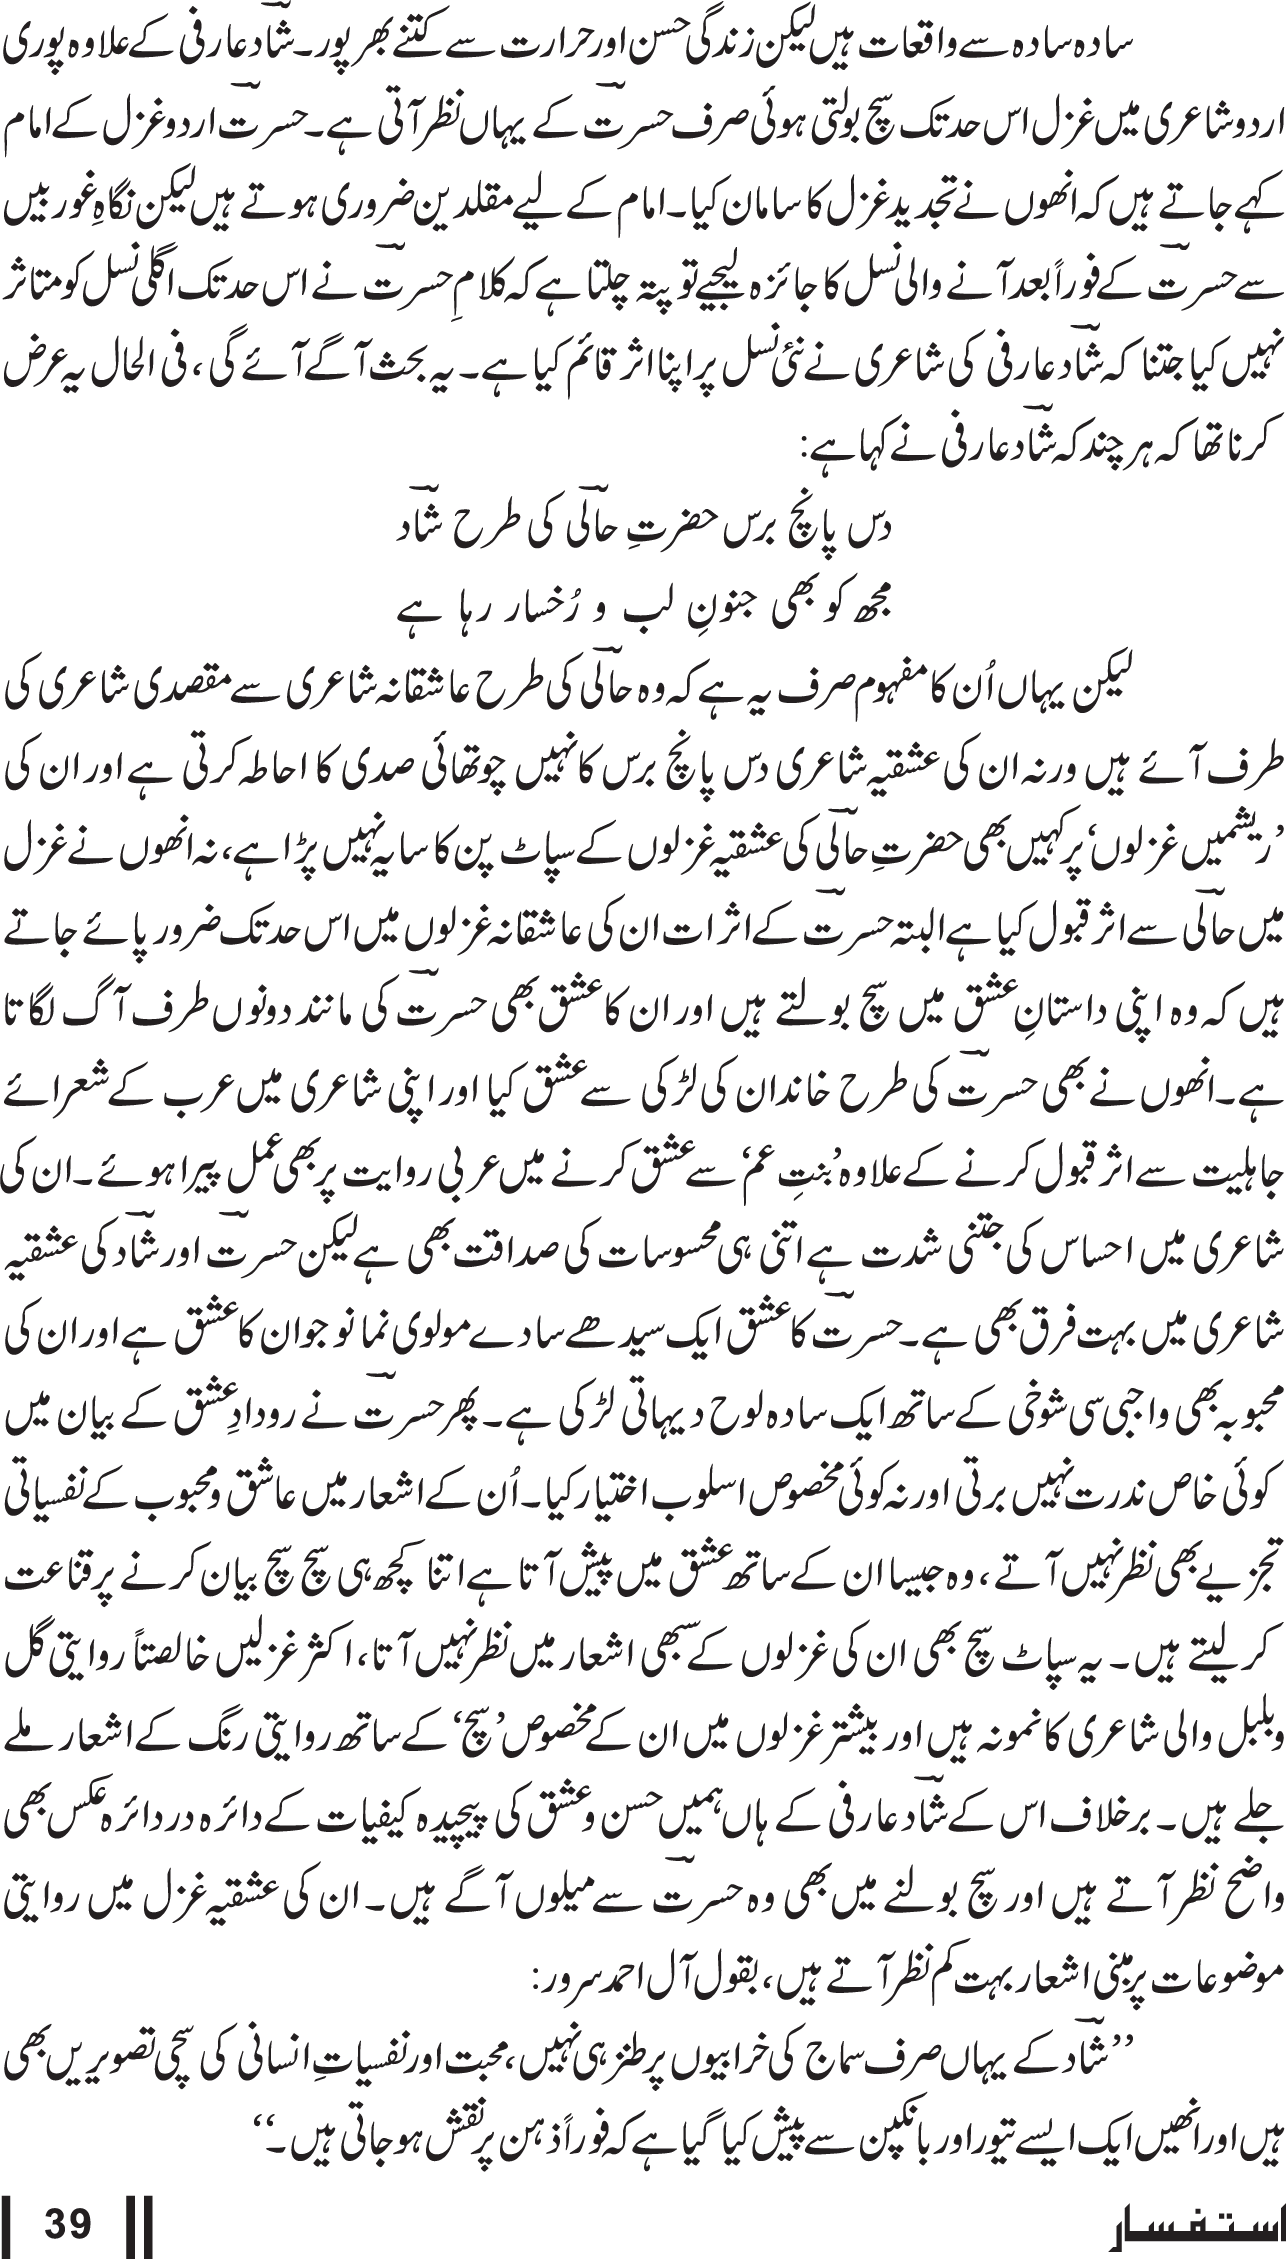 Second_Issue-39